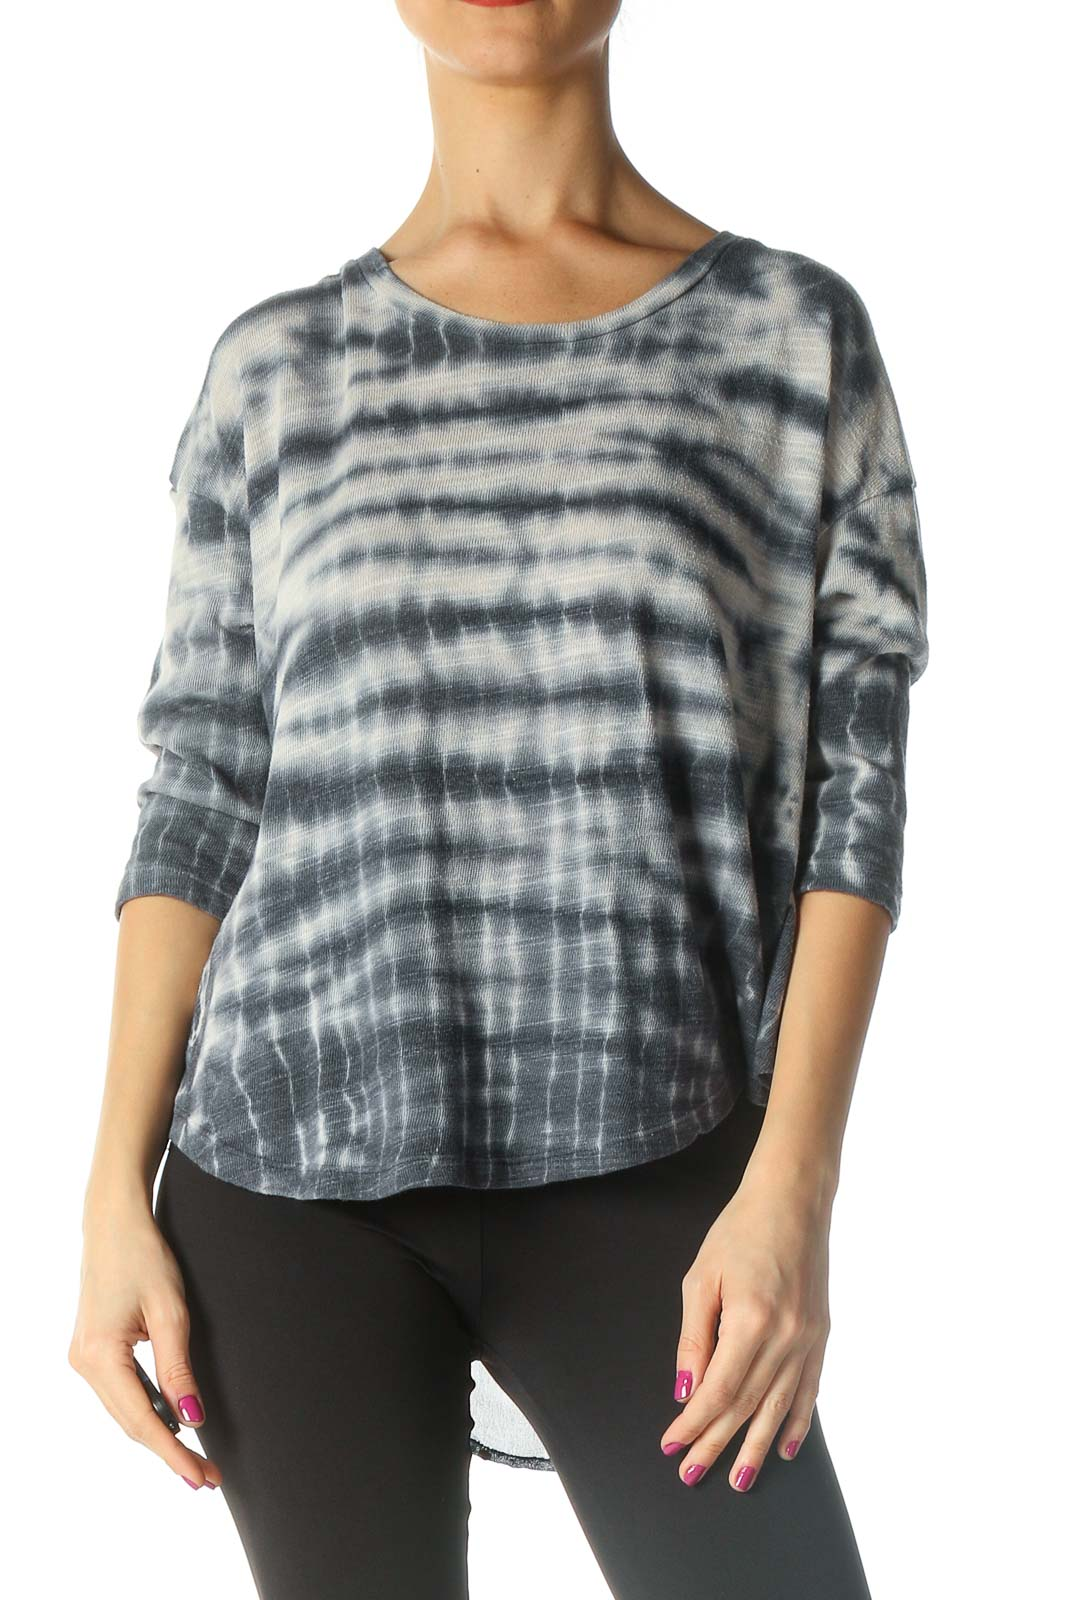 Gray Tie Dye Casual T-Shirt Front